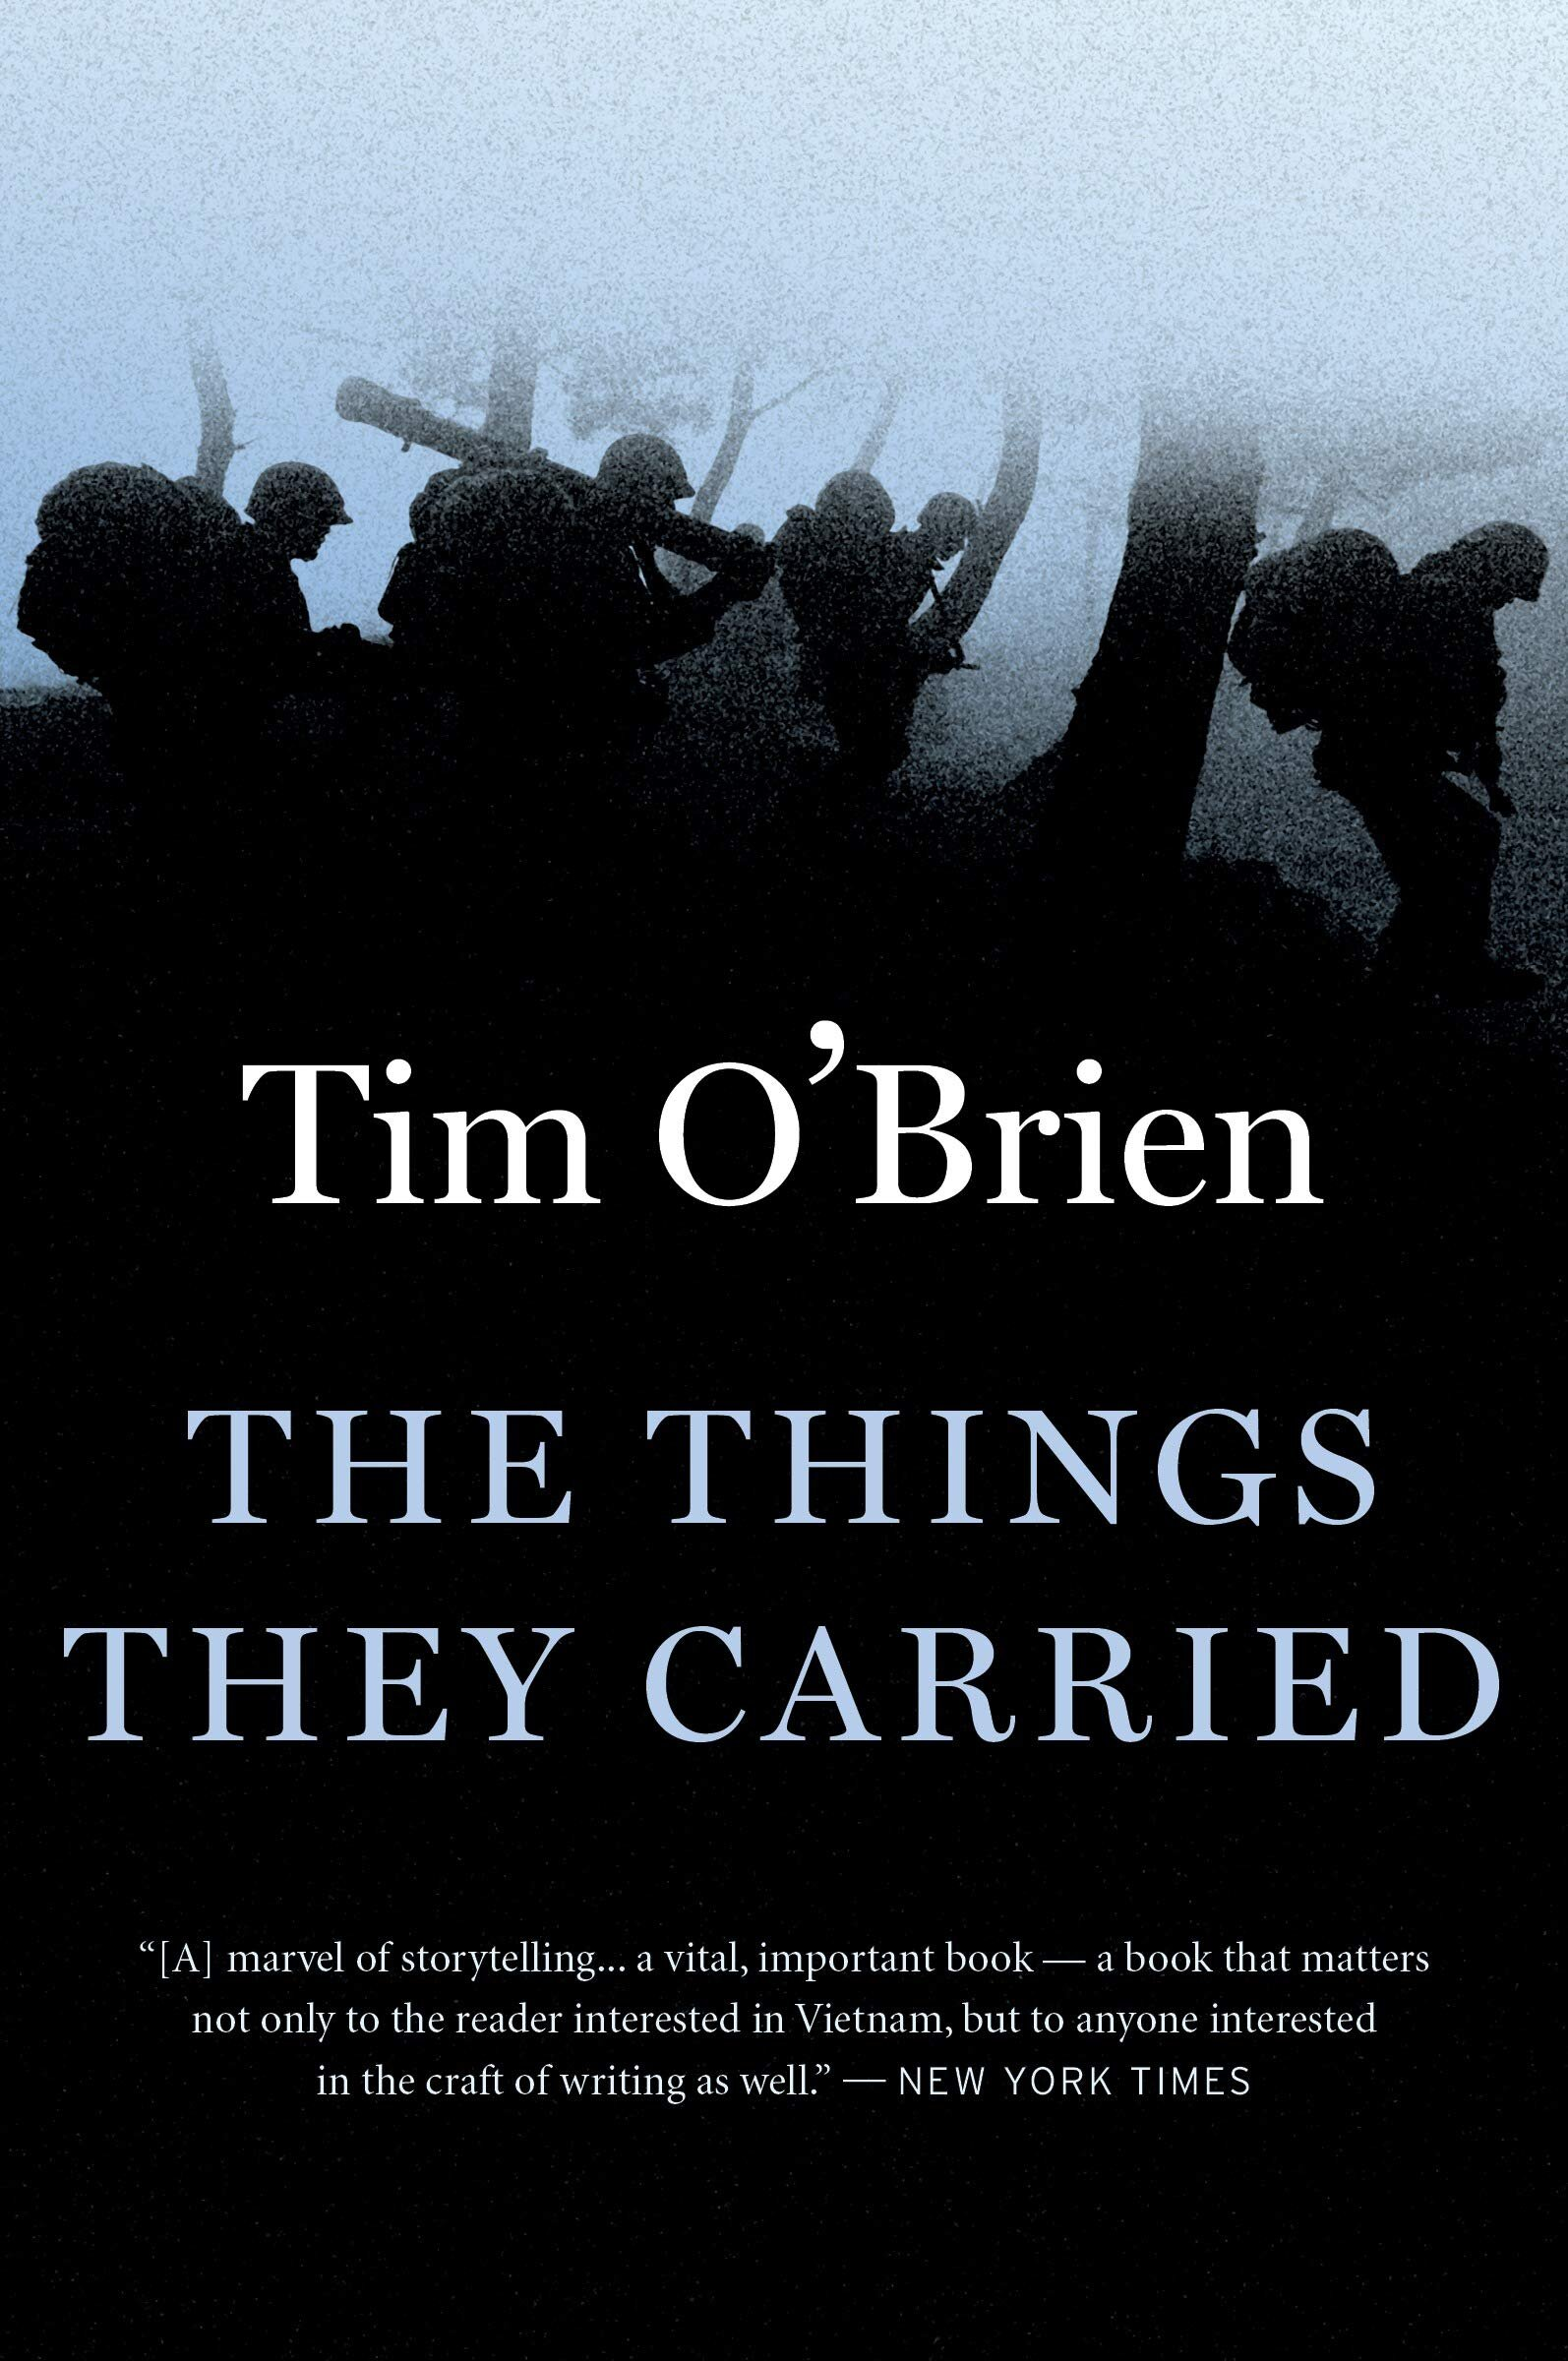 Imagination And Language Combine To Make Spirits In The Head On Tim O Brien S The Things They Carried Lit Pub